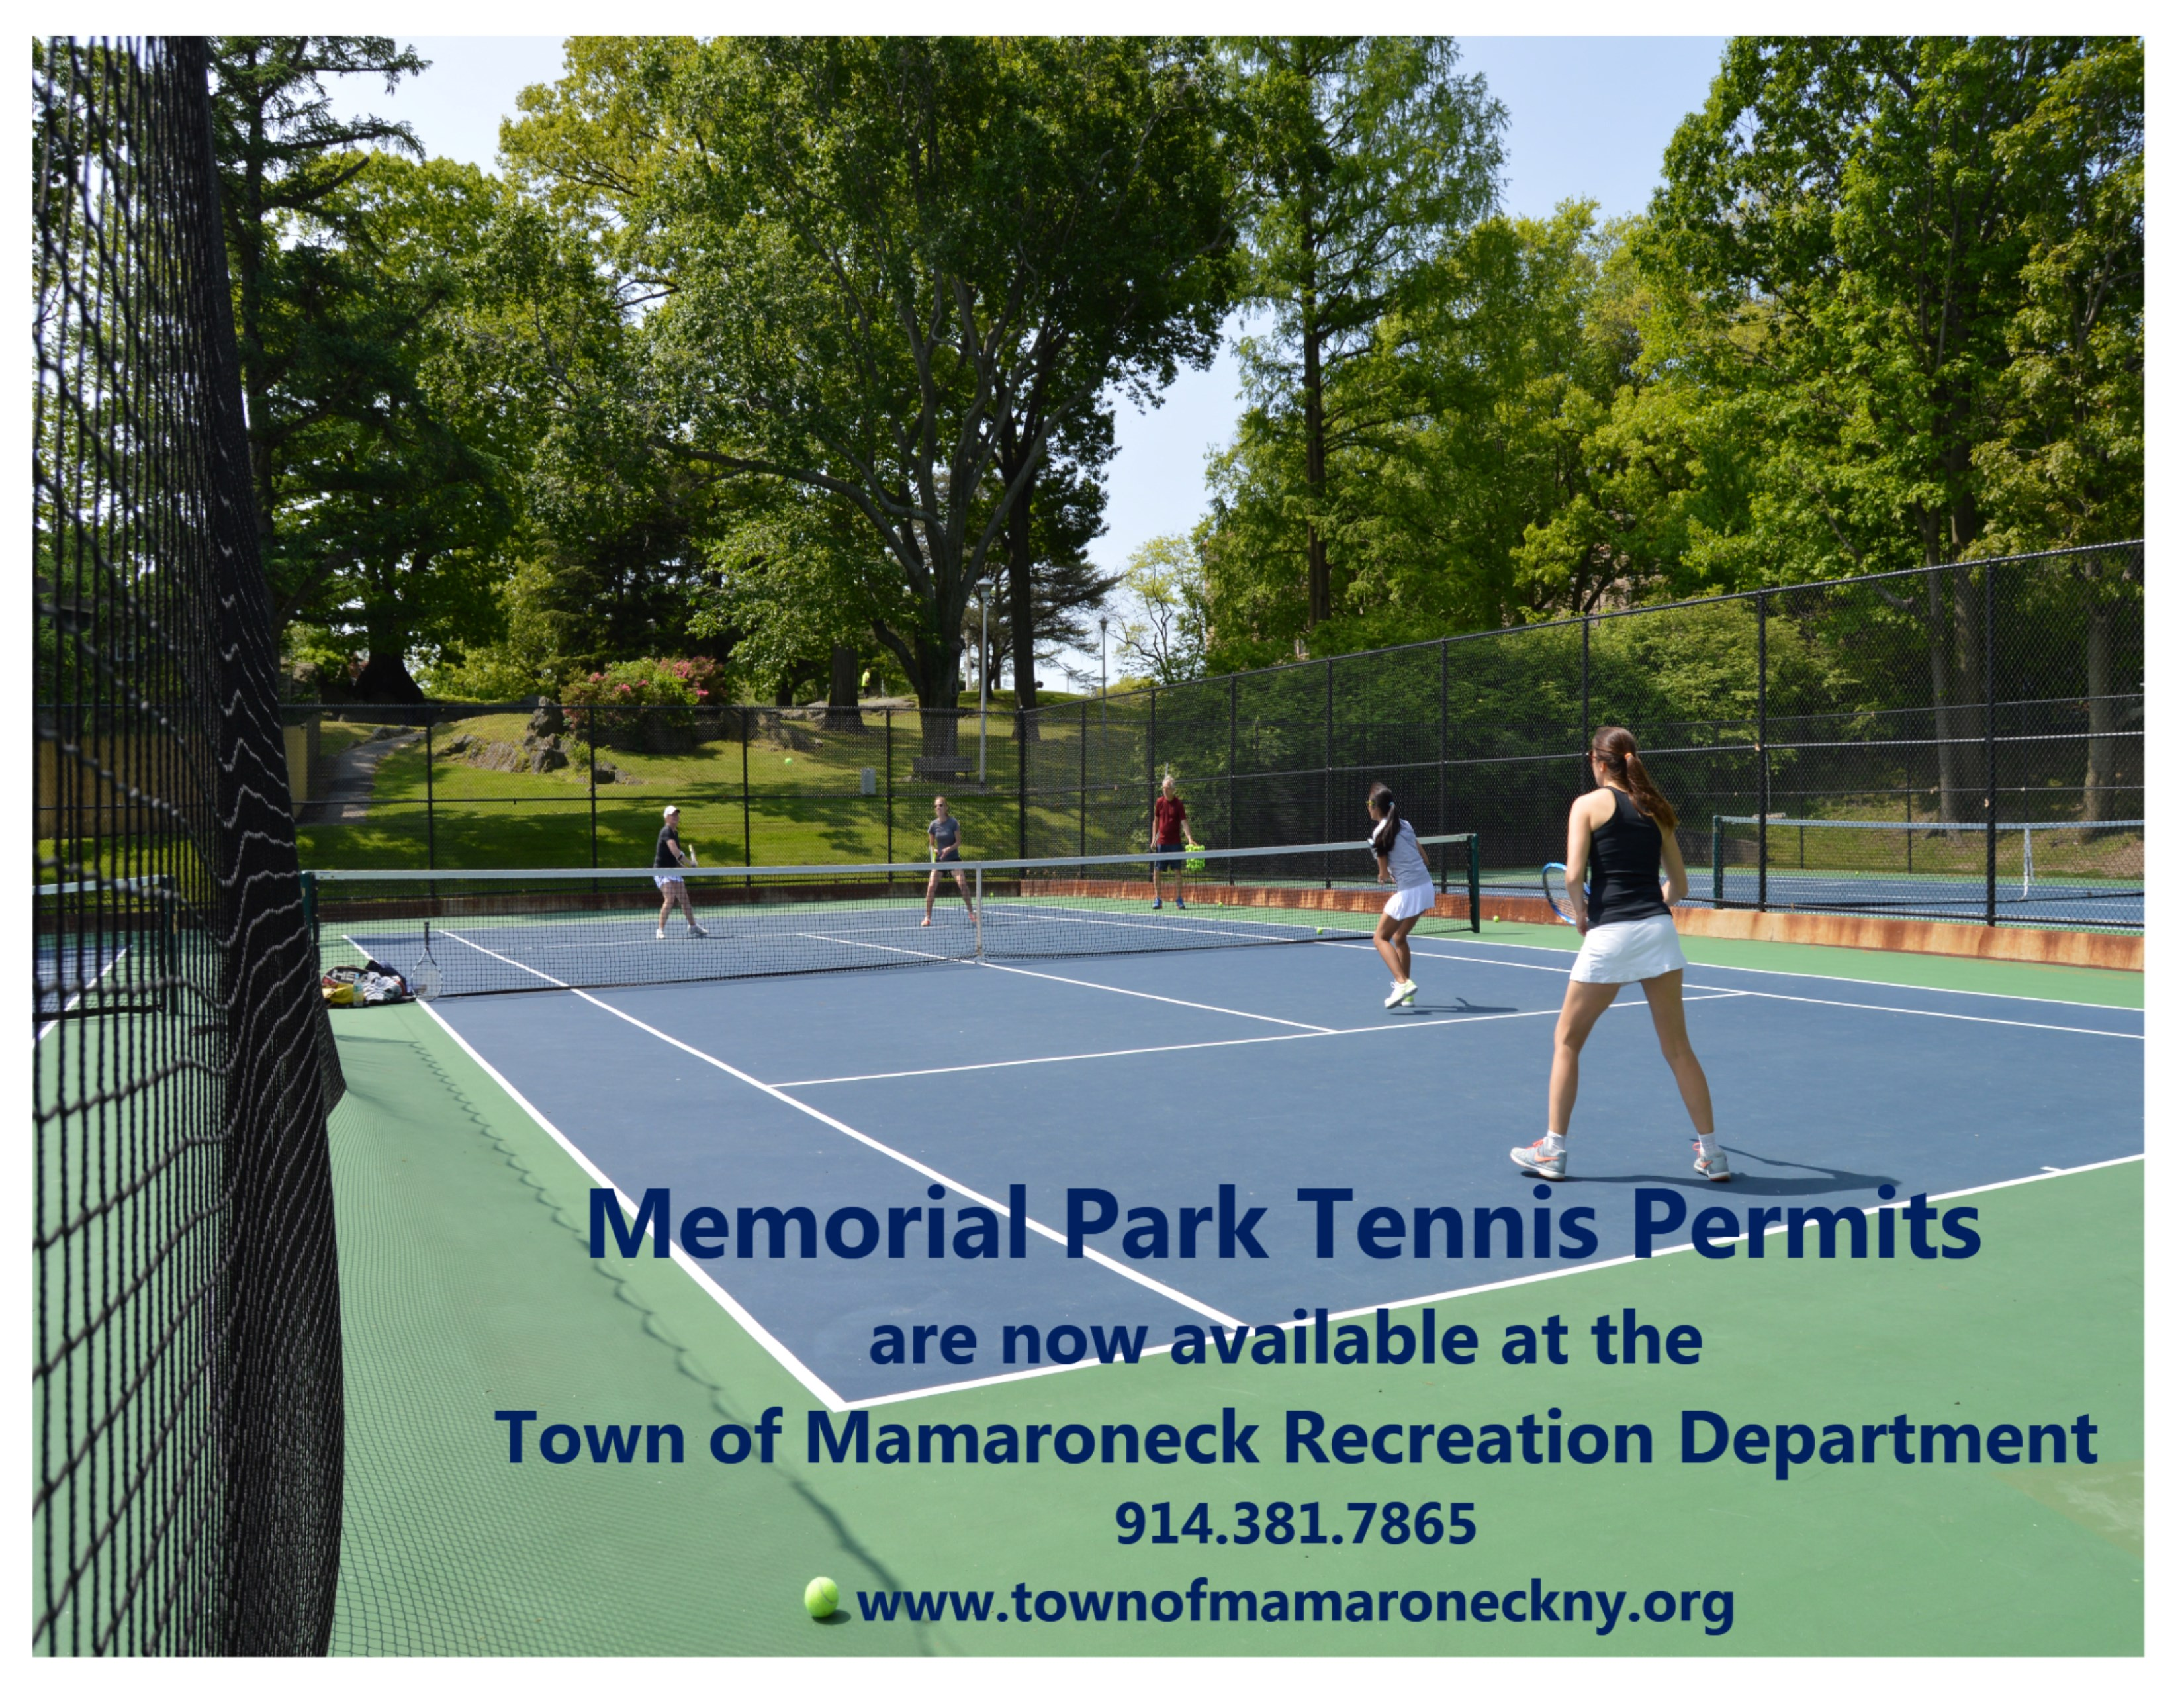 Memorial Park Tennis Permits Now Available.jpg